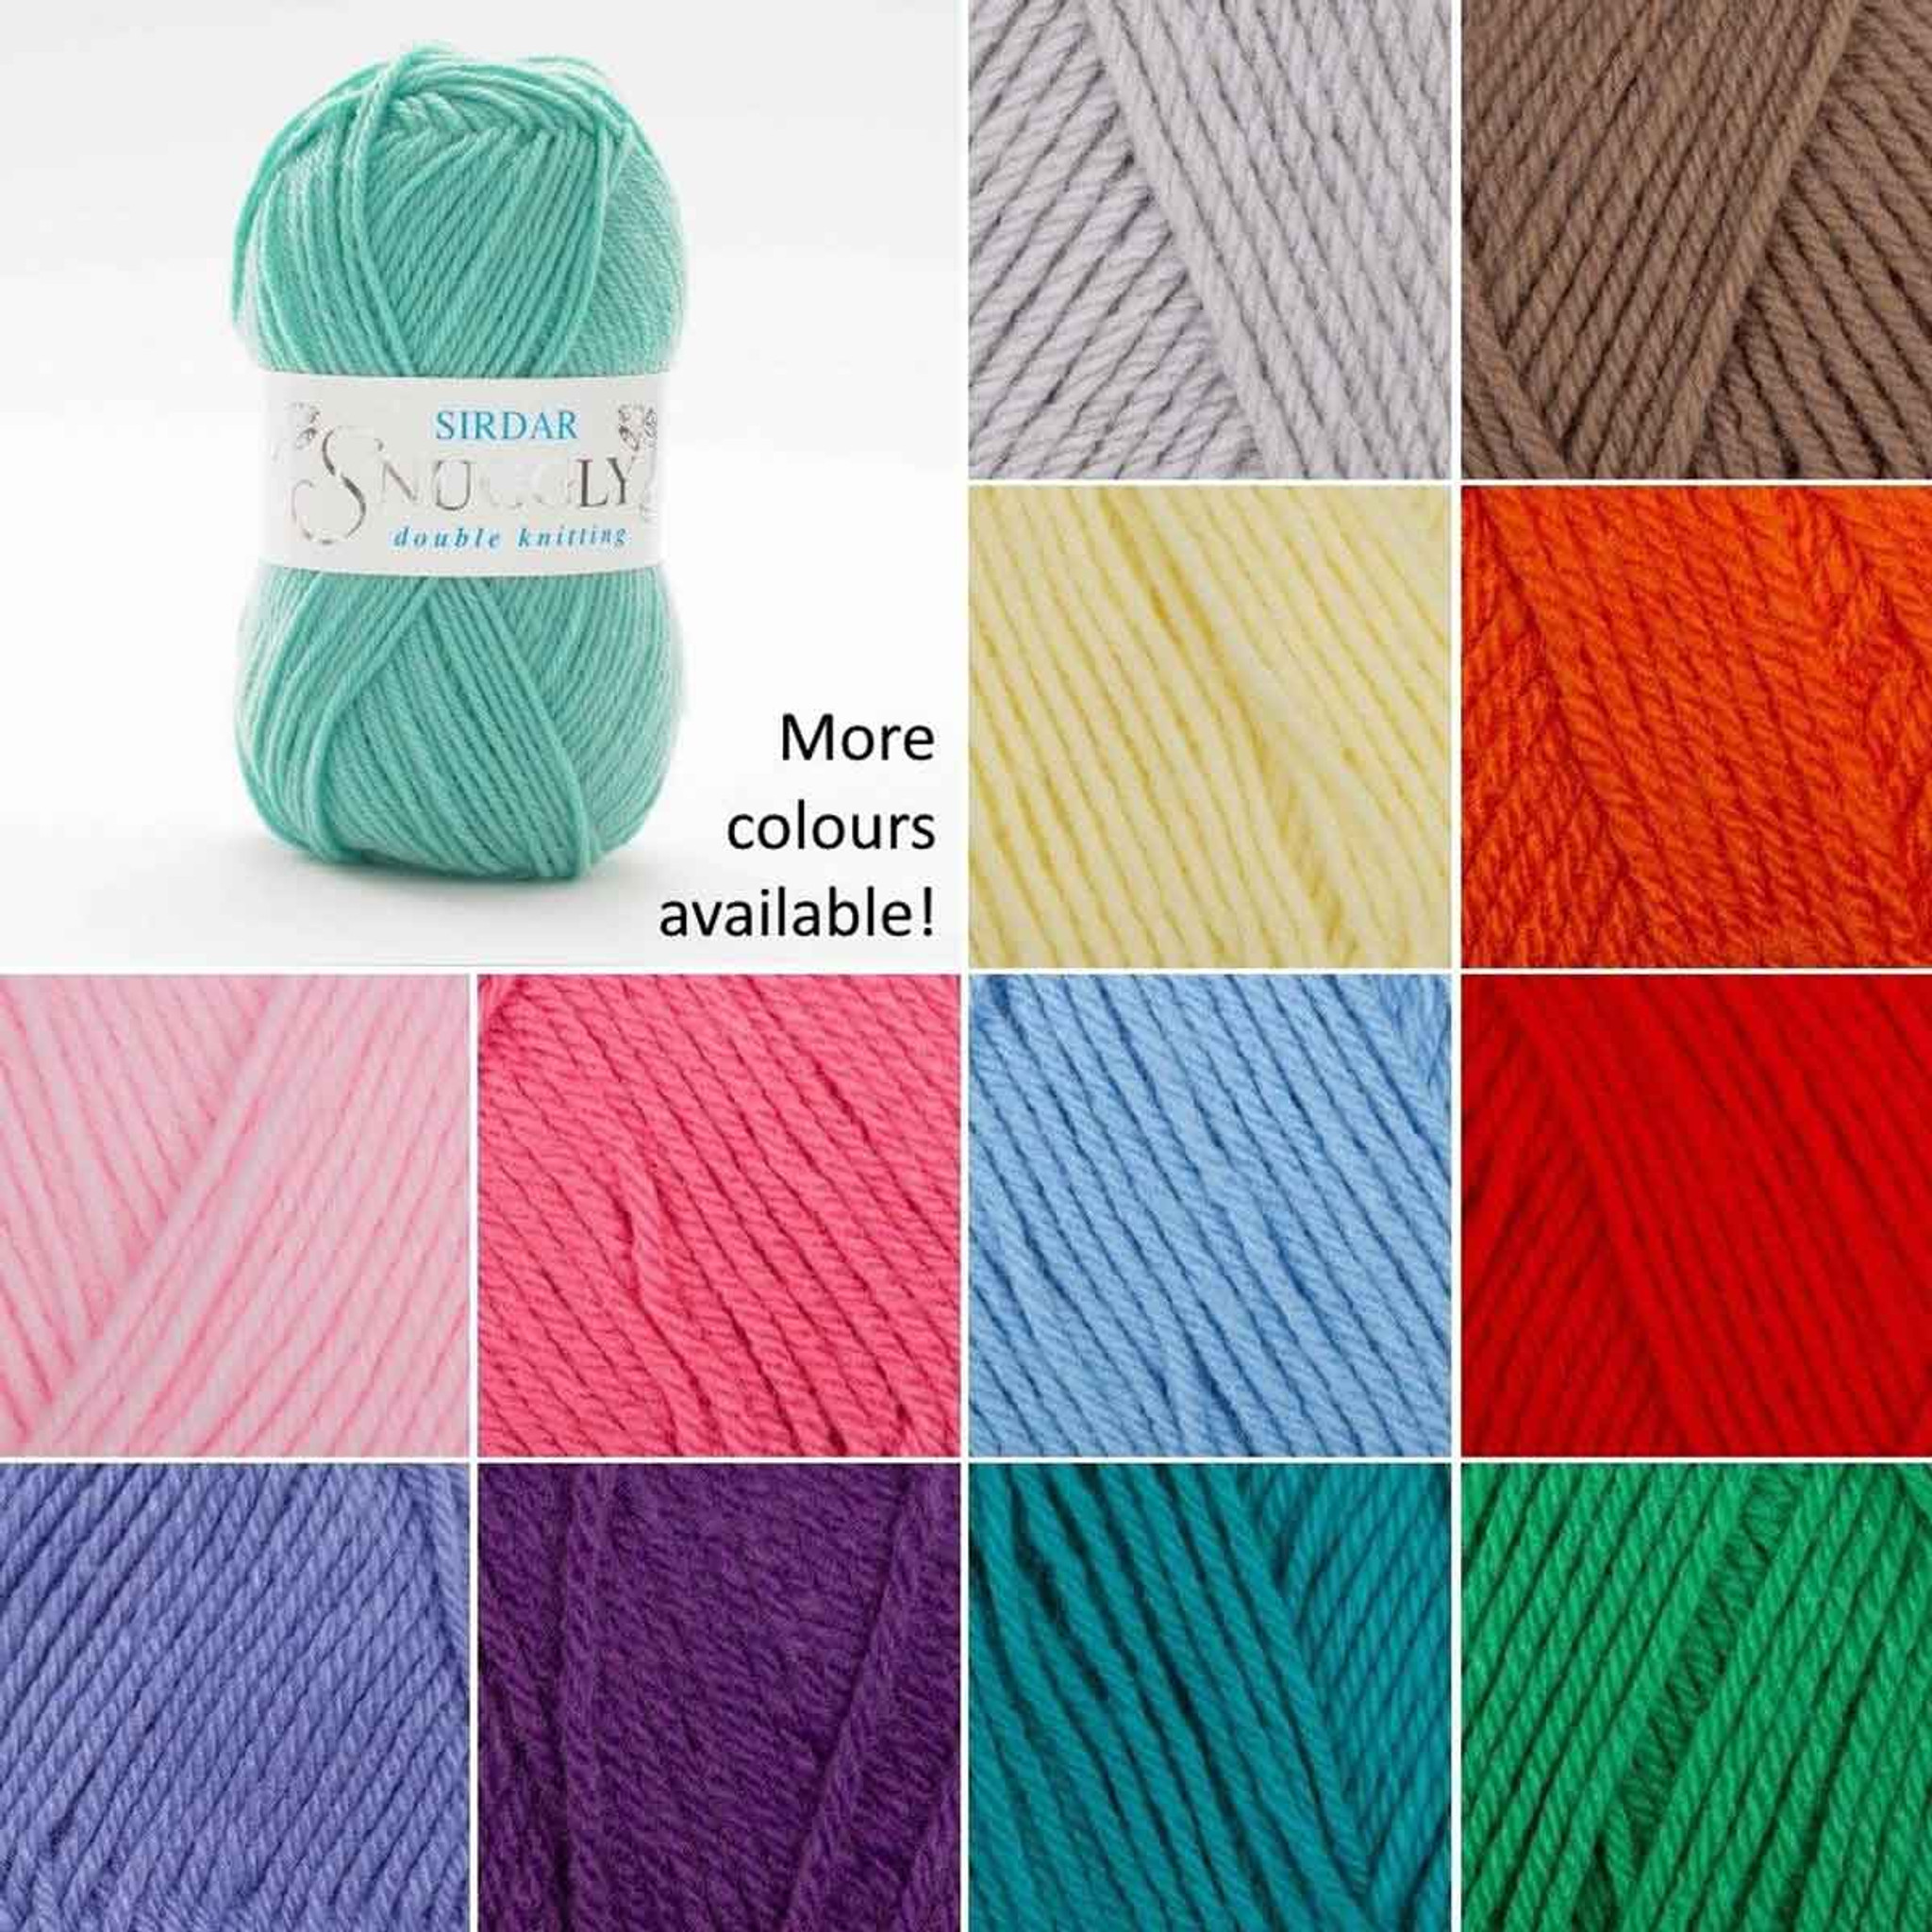 5 x 50g Balls of Sirdar Snuggly Double Knitting Wool//Yarn for Knitting//Crochet